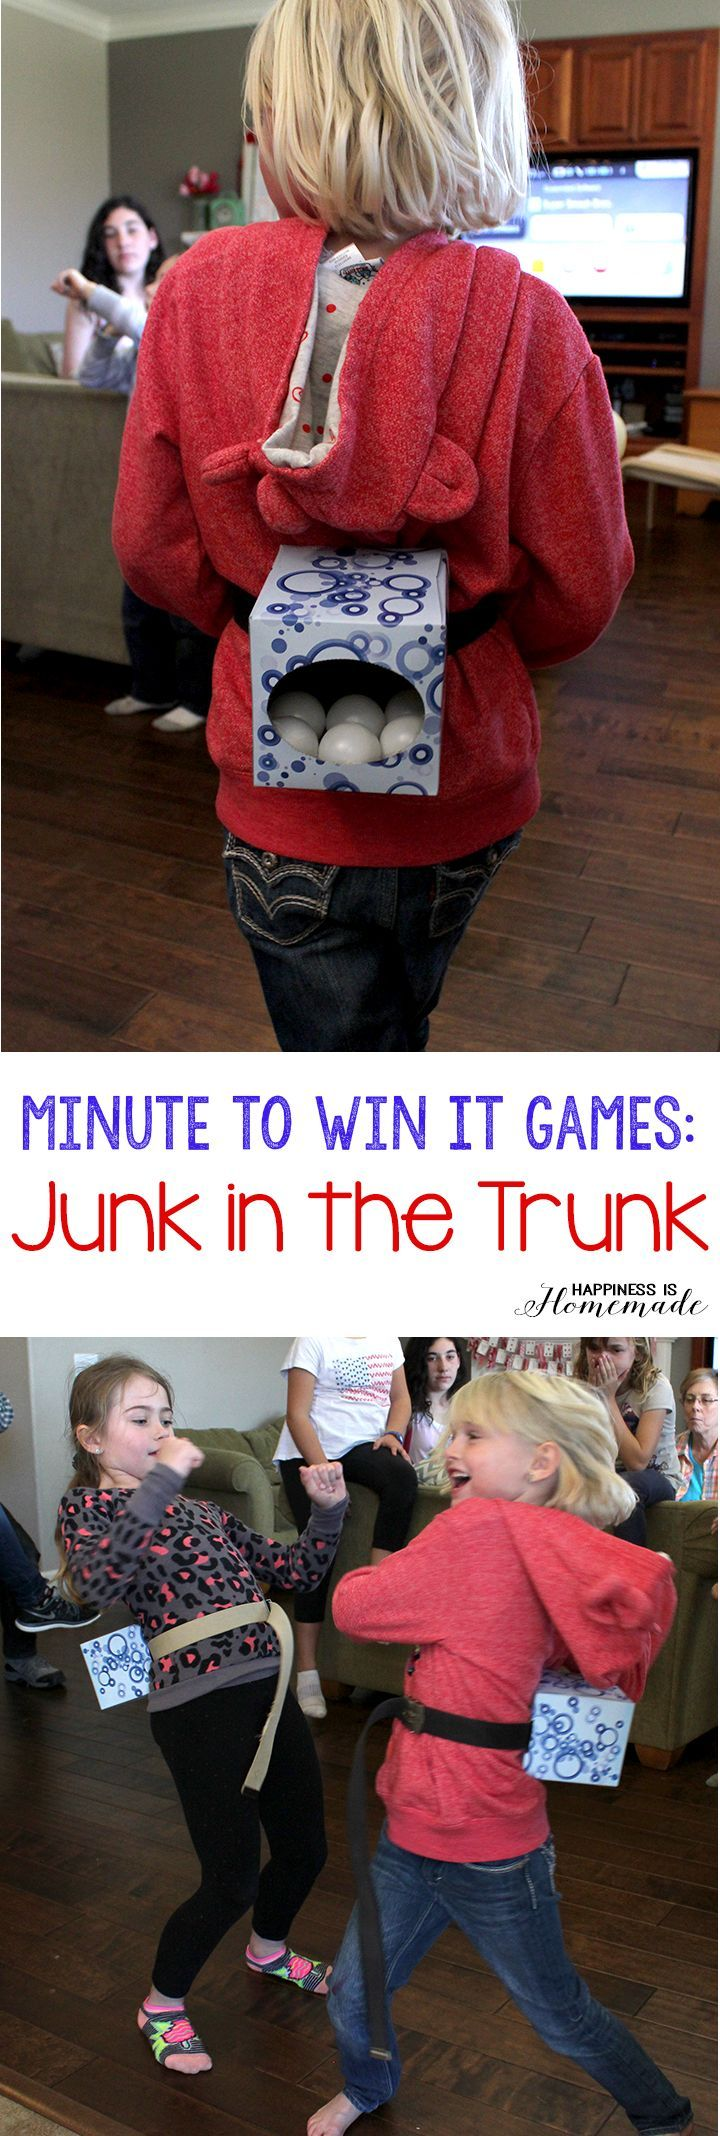 These 10 Minute to Win It games were perfect for all ages – challenging enough for older children, but easy enough for everyone to join in the fun! Hysterical silly fun for everyone!